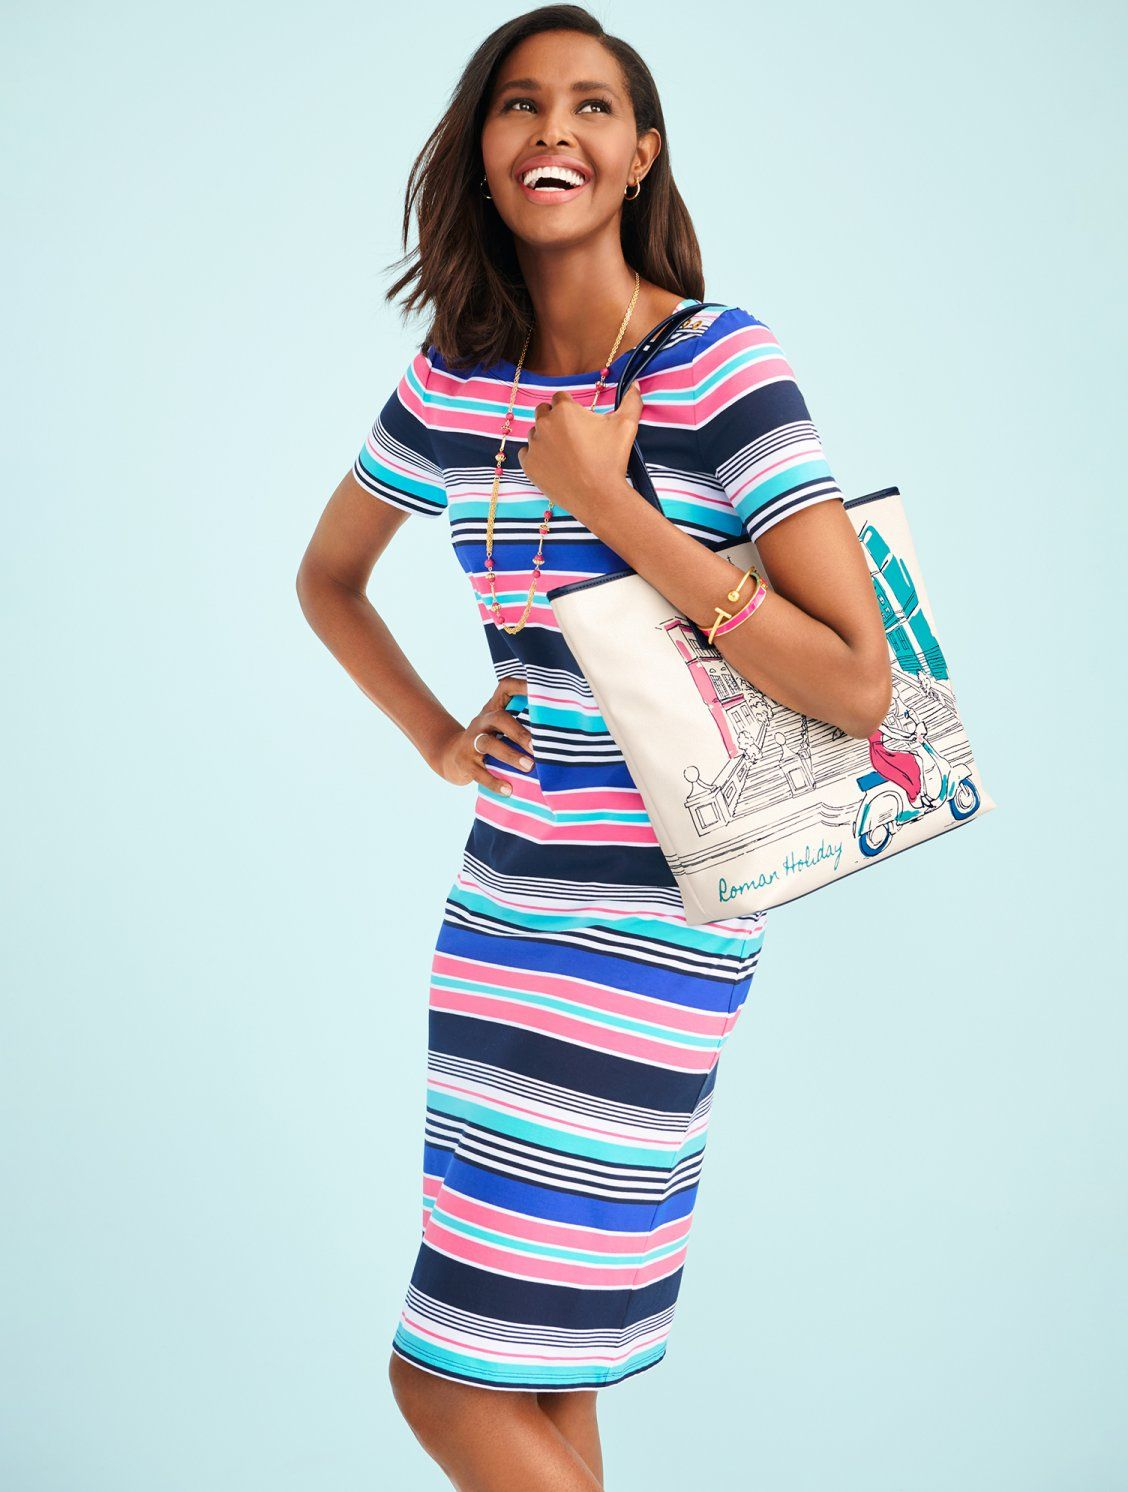 Vibrant Stripes Make This Dress A Fun Addition To Your Wardrobe The Simple Silhouette Makes It The Pe Simple Dress Casual Simple Summer Dresses Simple Dresses [ 1492 x 1128 Pixel ]